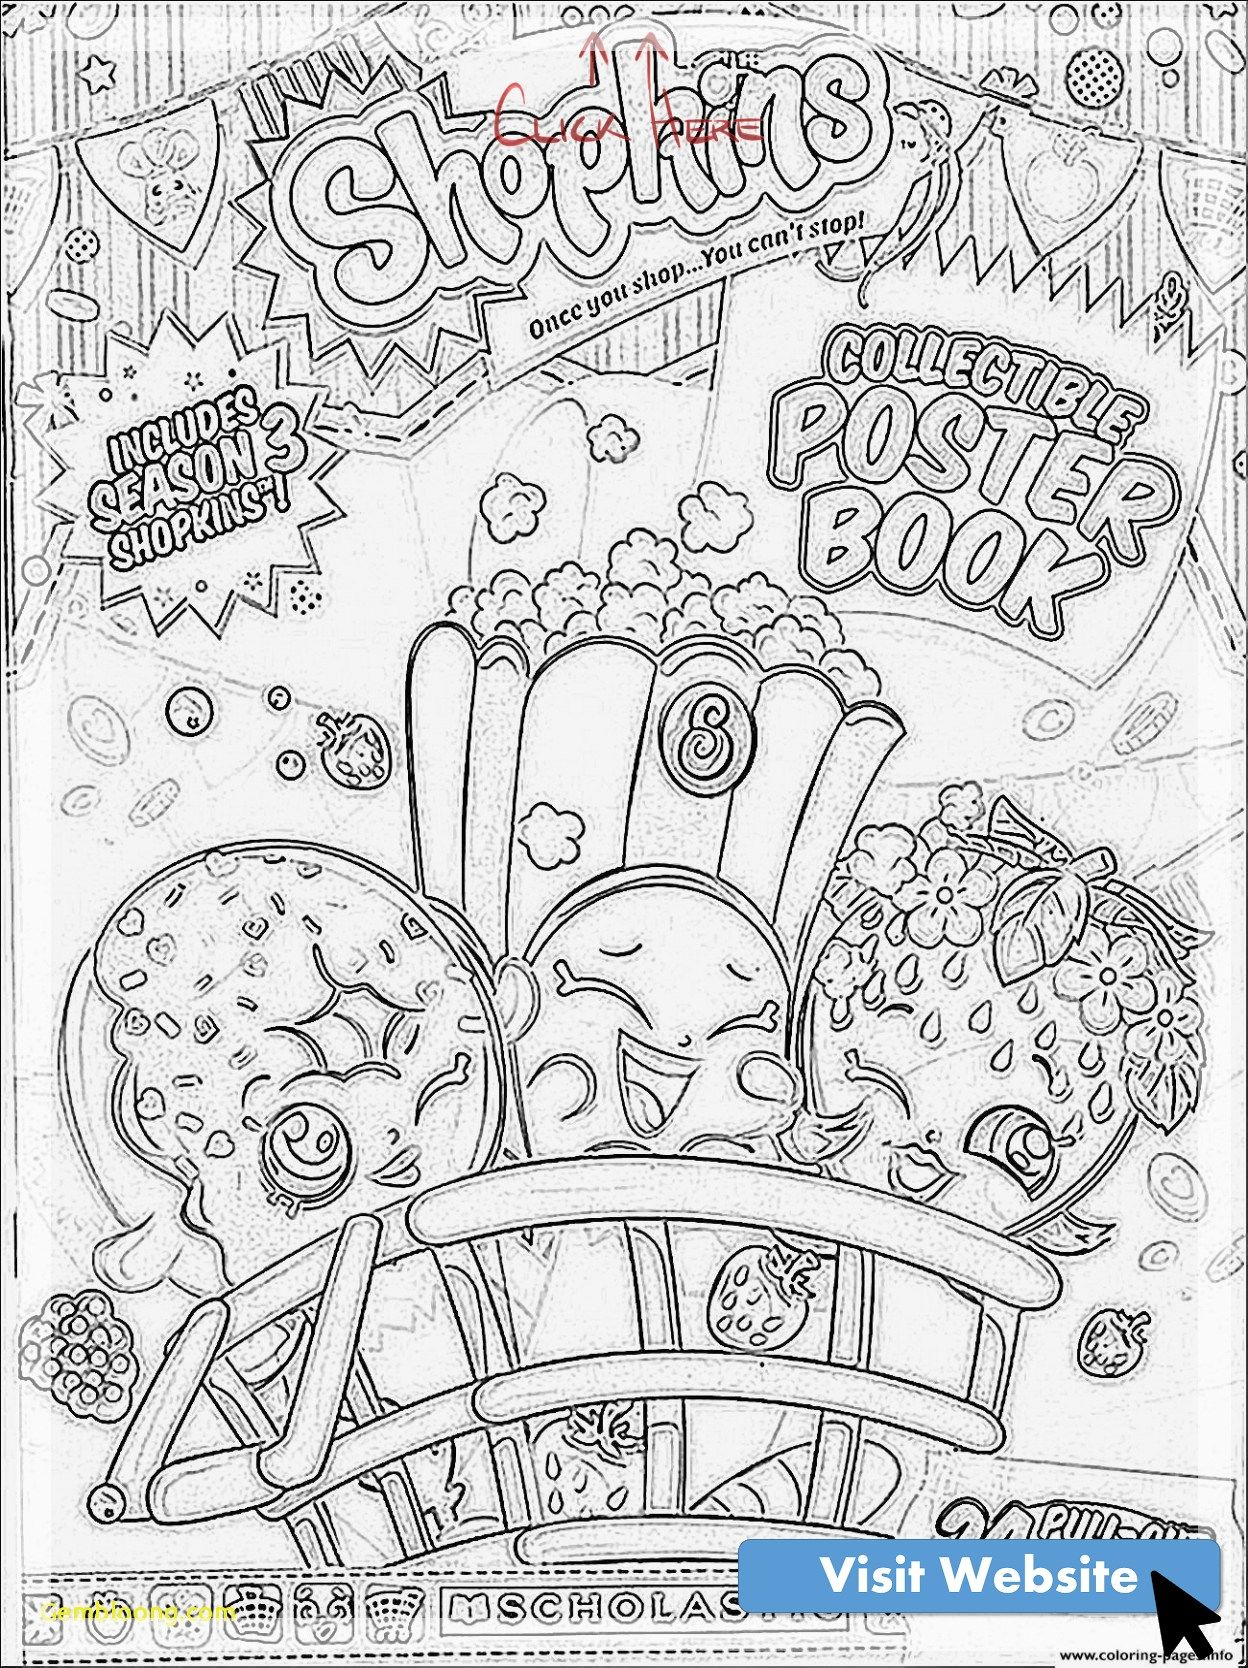 26 Cool Coloring Pages For Kids Disney Activity Books Shopkins Colouring Pages Thanksgiving Coloring Pages Animal Coloring Pages [ 1668 x 1248 Pixel ]